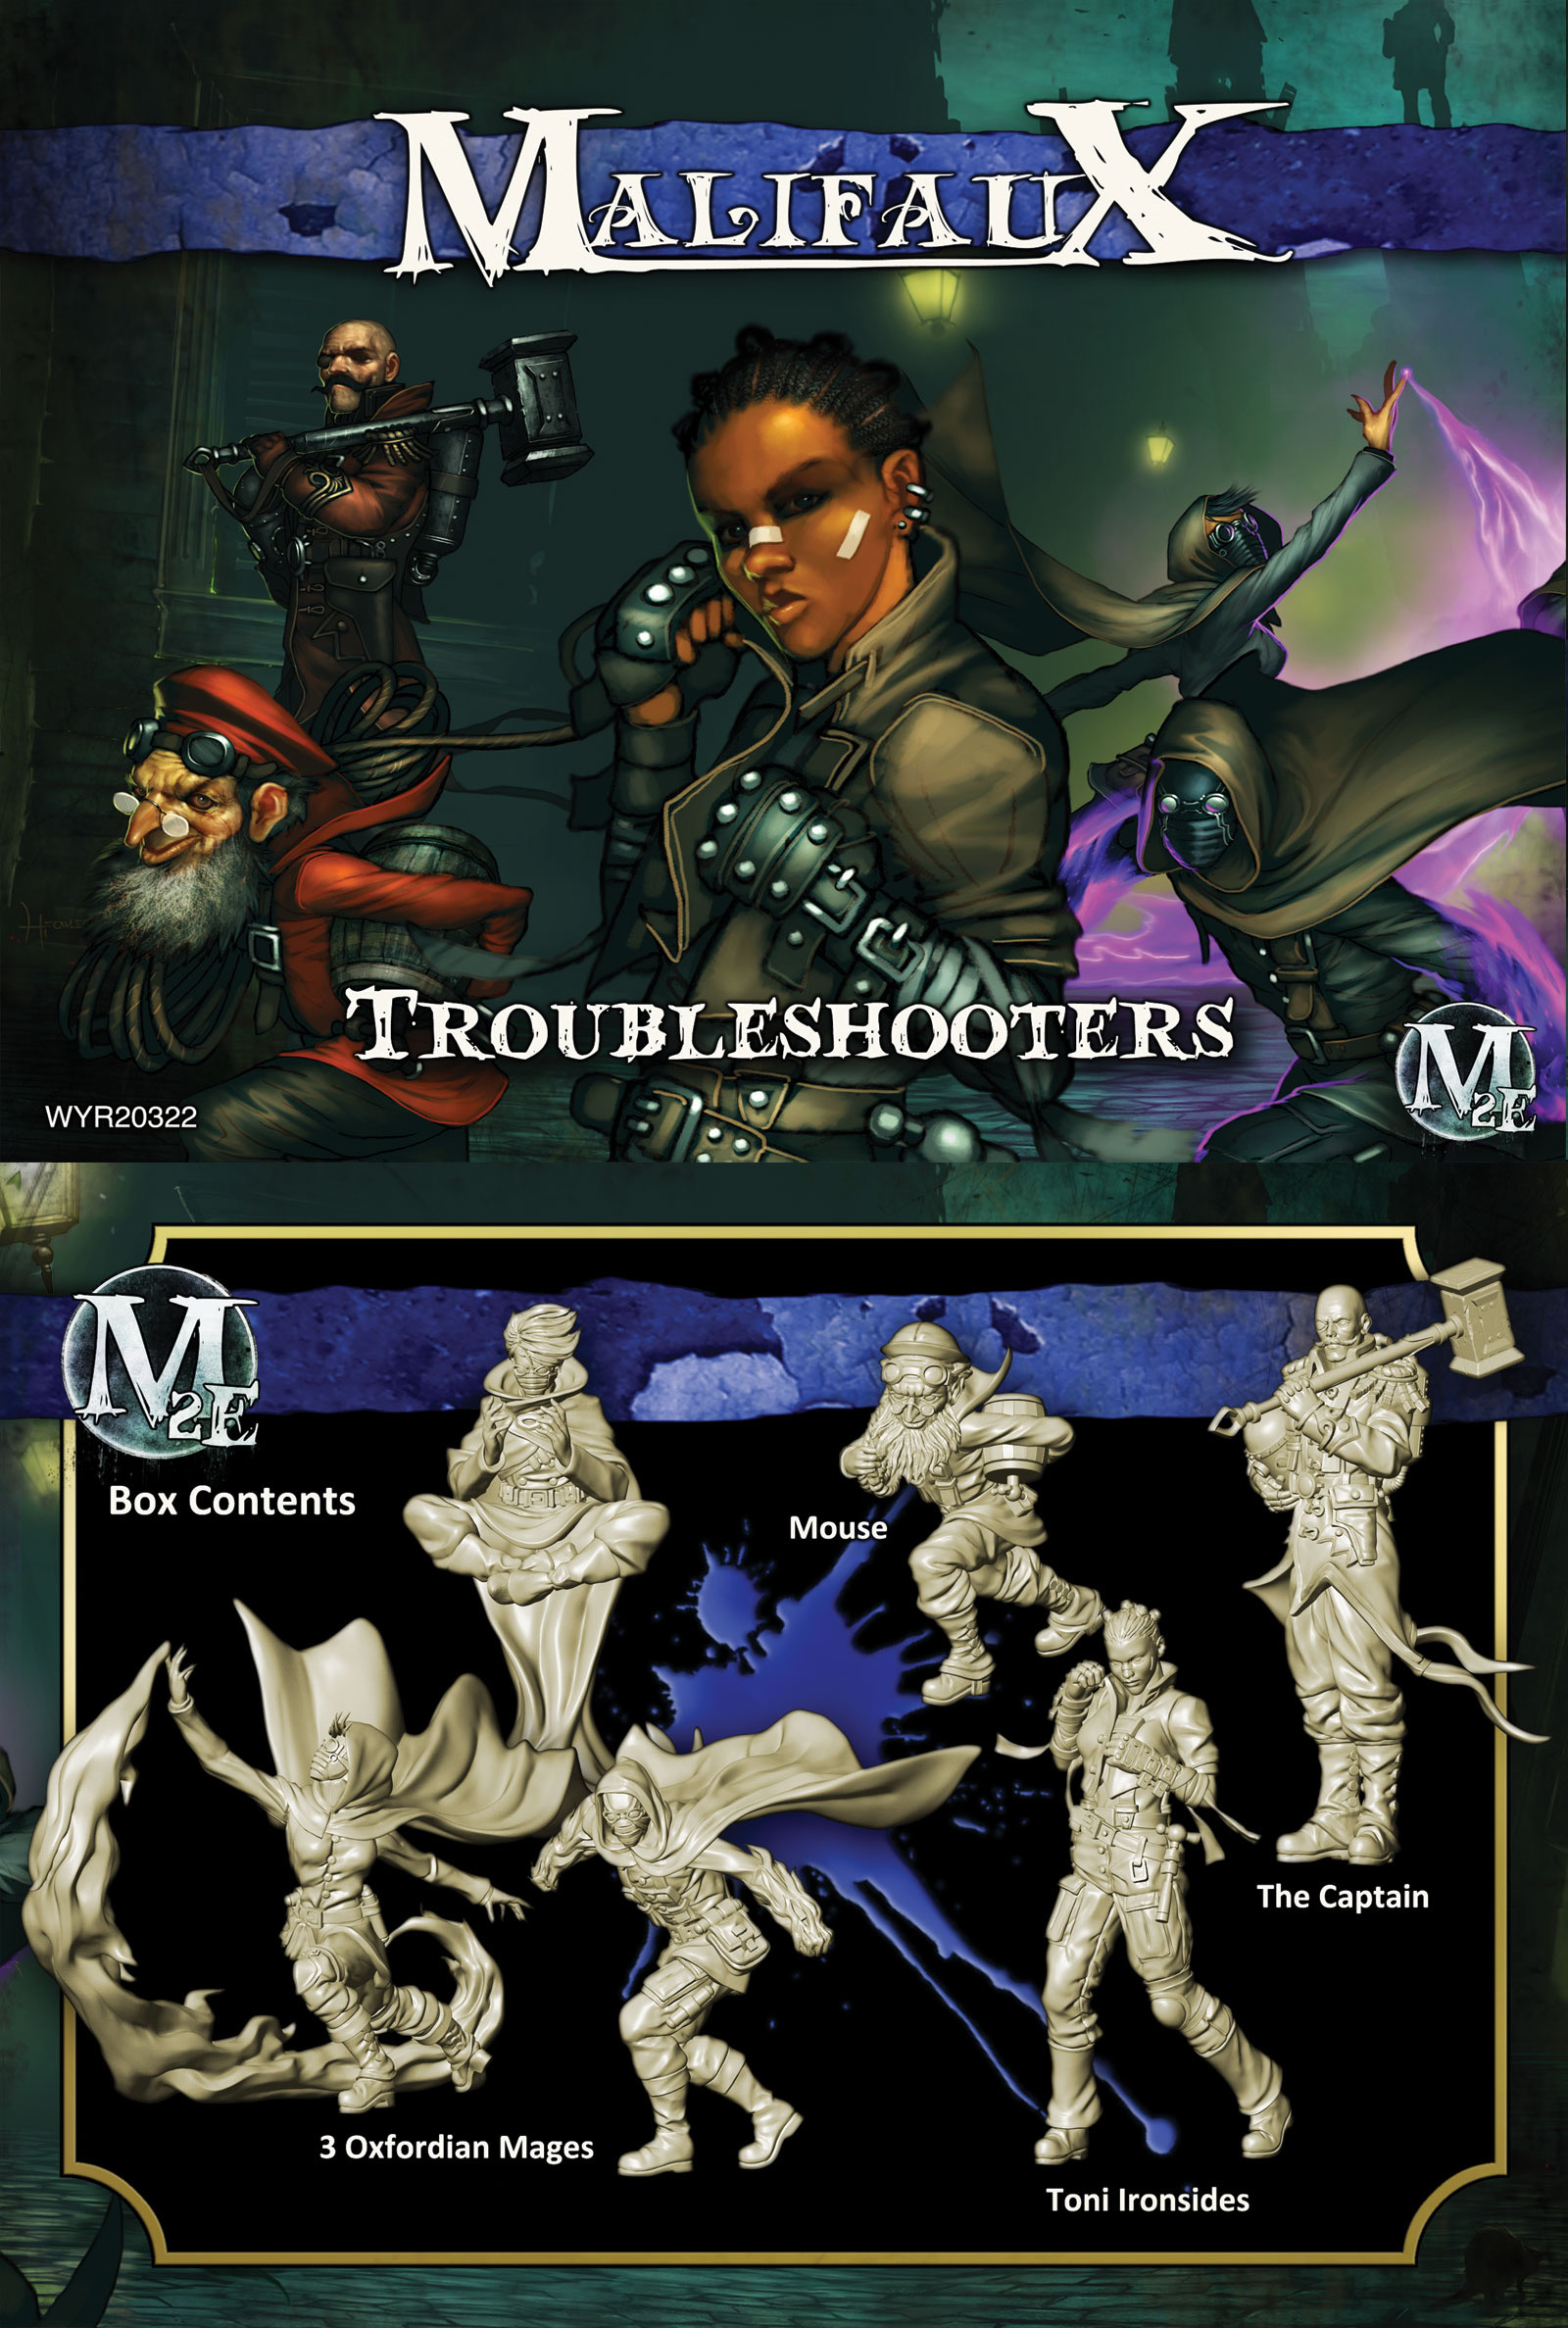 Troubleshooters (Ironsides)